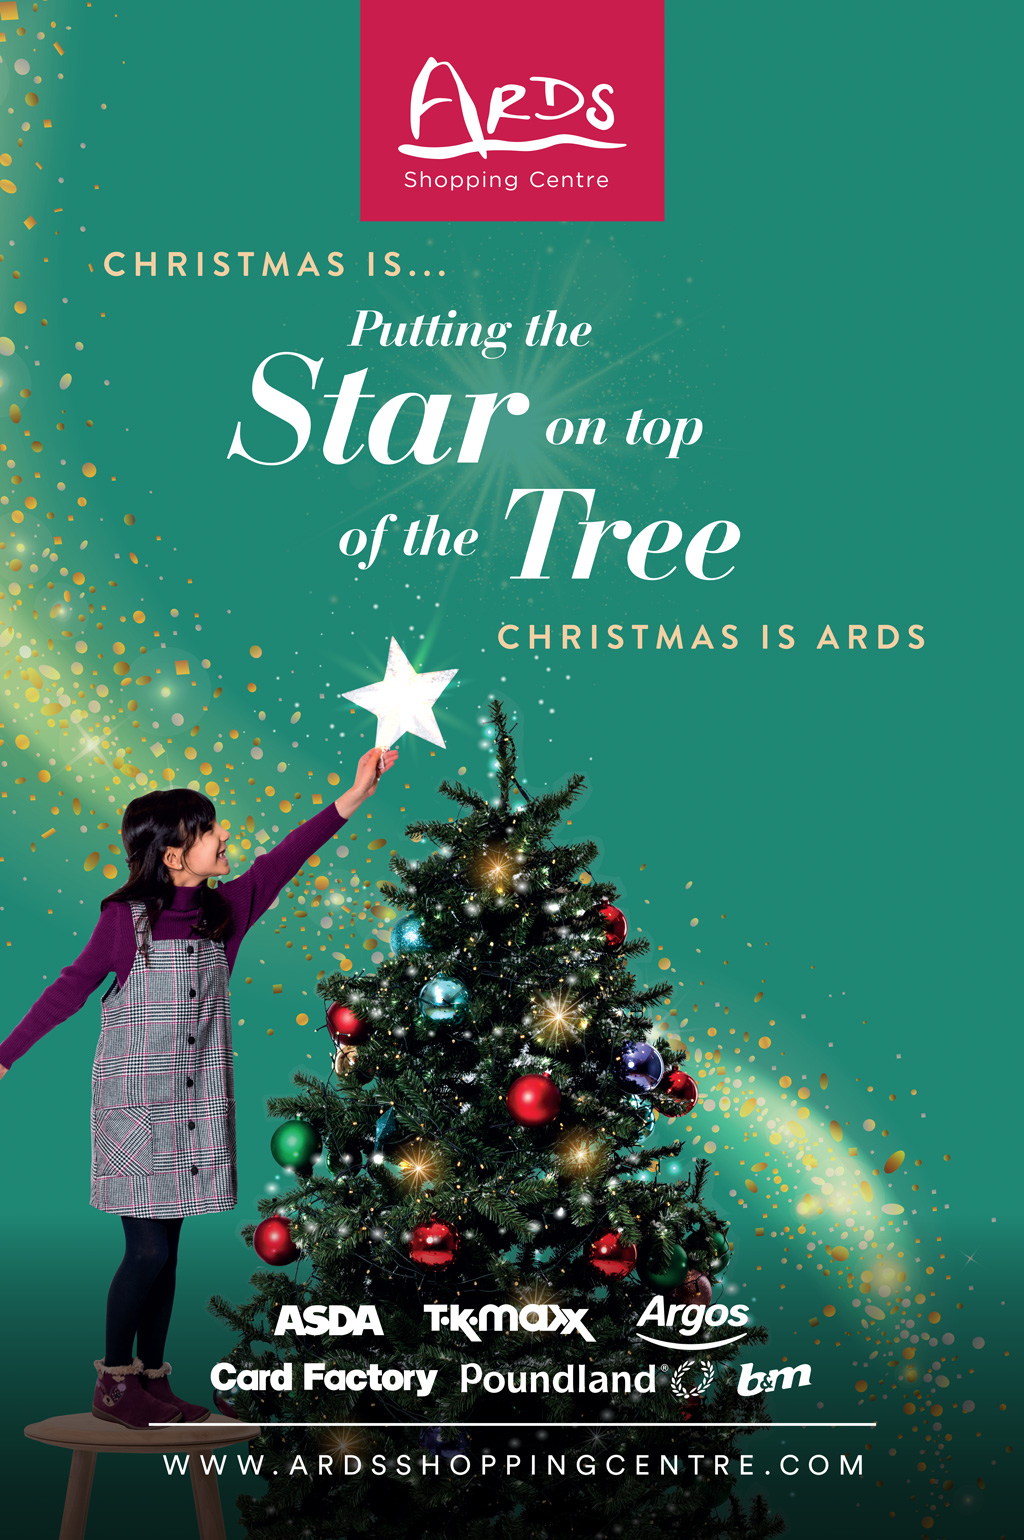 Ards Shopping Centre Christmas 2019 Walker Communications Collette Creative Photography Collette O'Neill